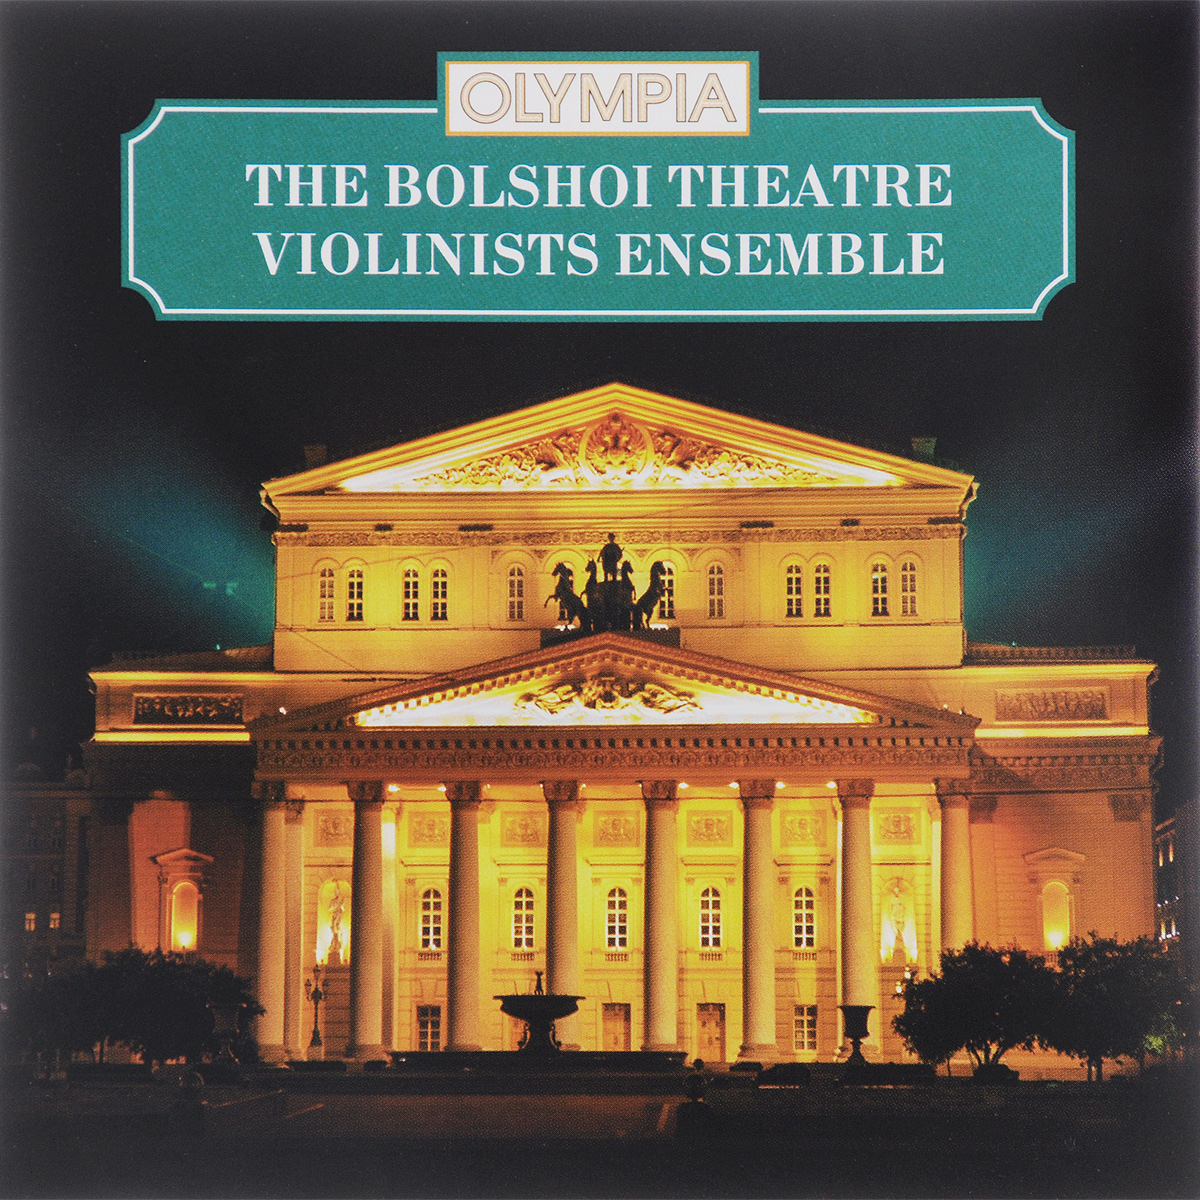 The Bolshoi Theatre Violinists Ensamble,Ирина Зайцева The Bolshoi Theatre Violinists Ensemble